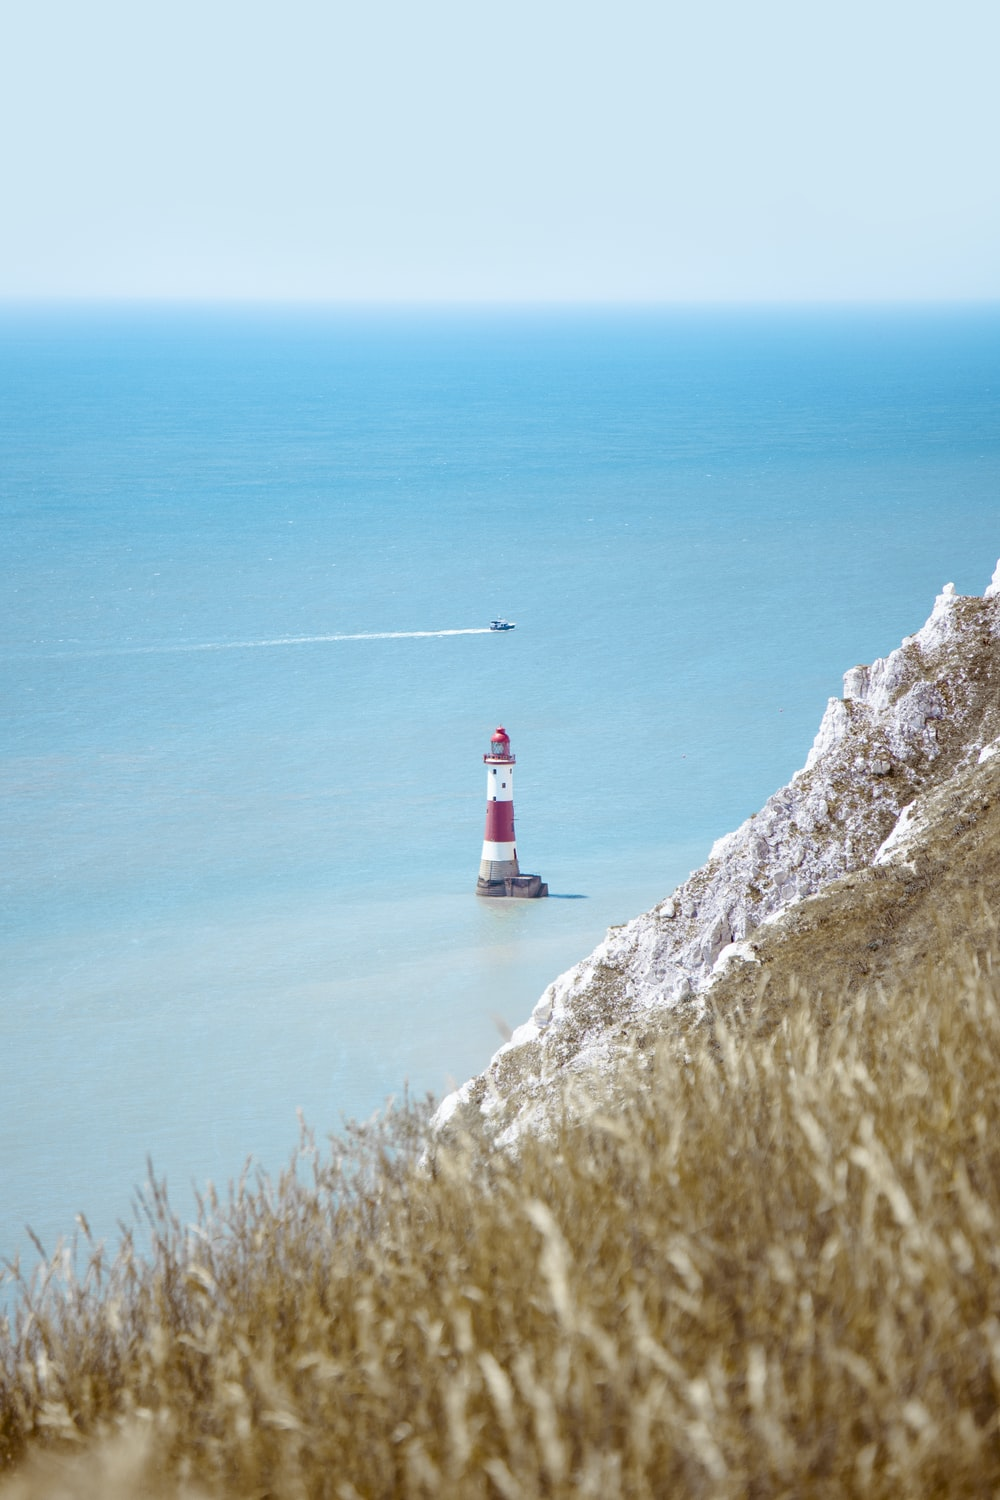 white and red lighthouse on cliff near body of water during daytime